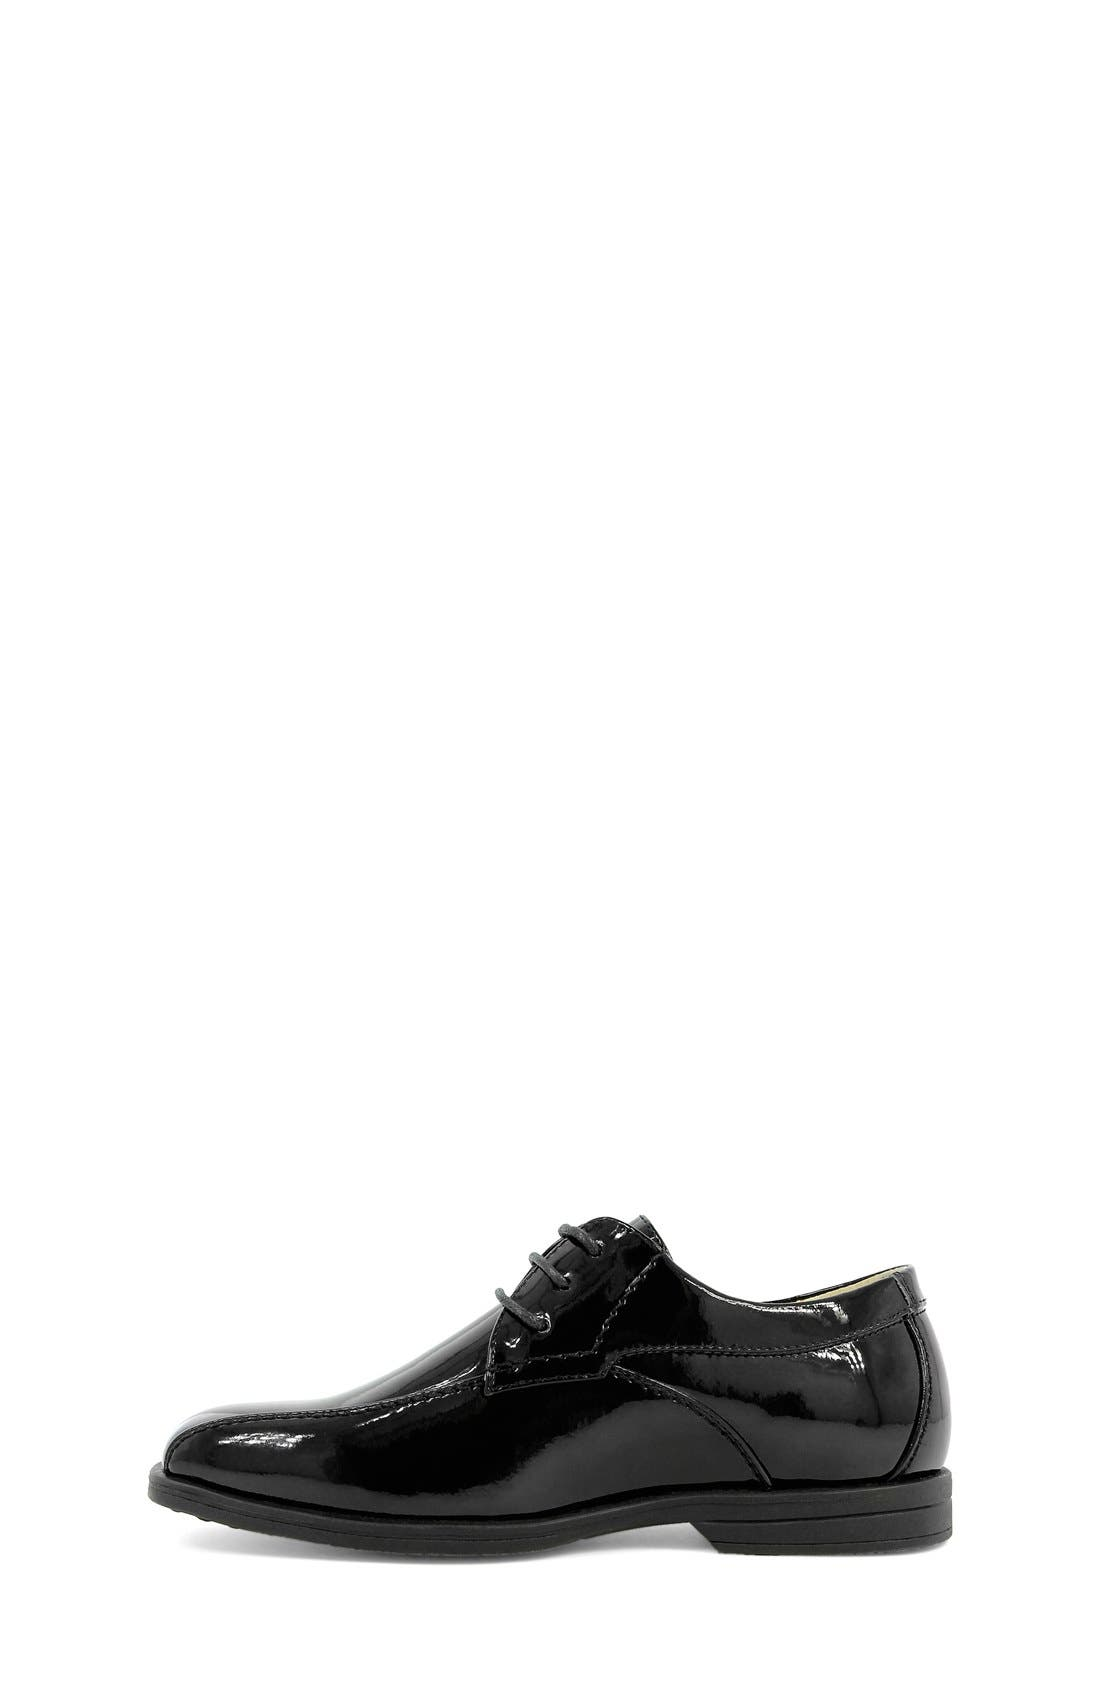 'Reveal' Oxford,                             Alternate thumbnail 3, color,                             BLACK PATENT LEATHER